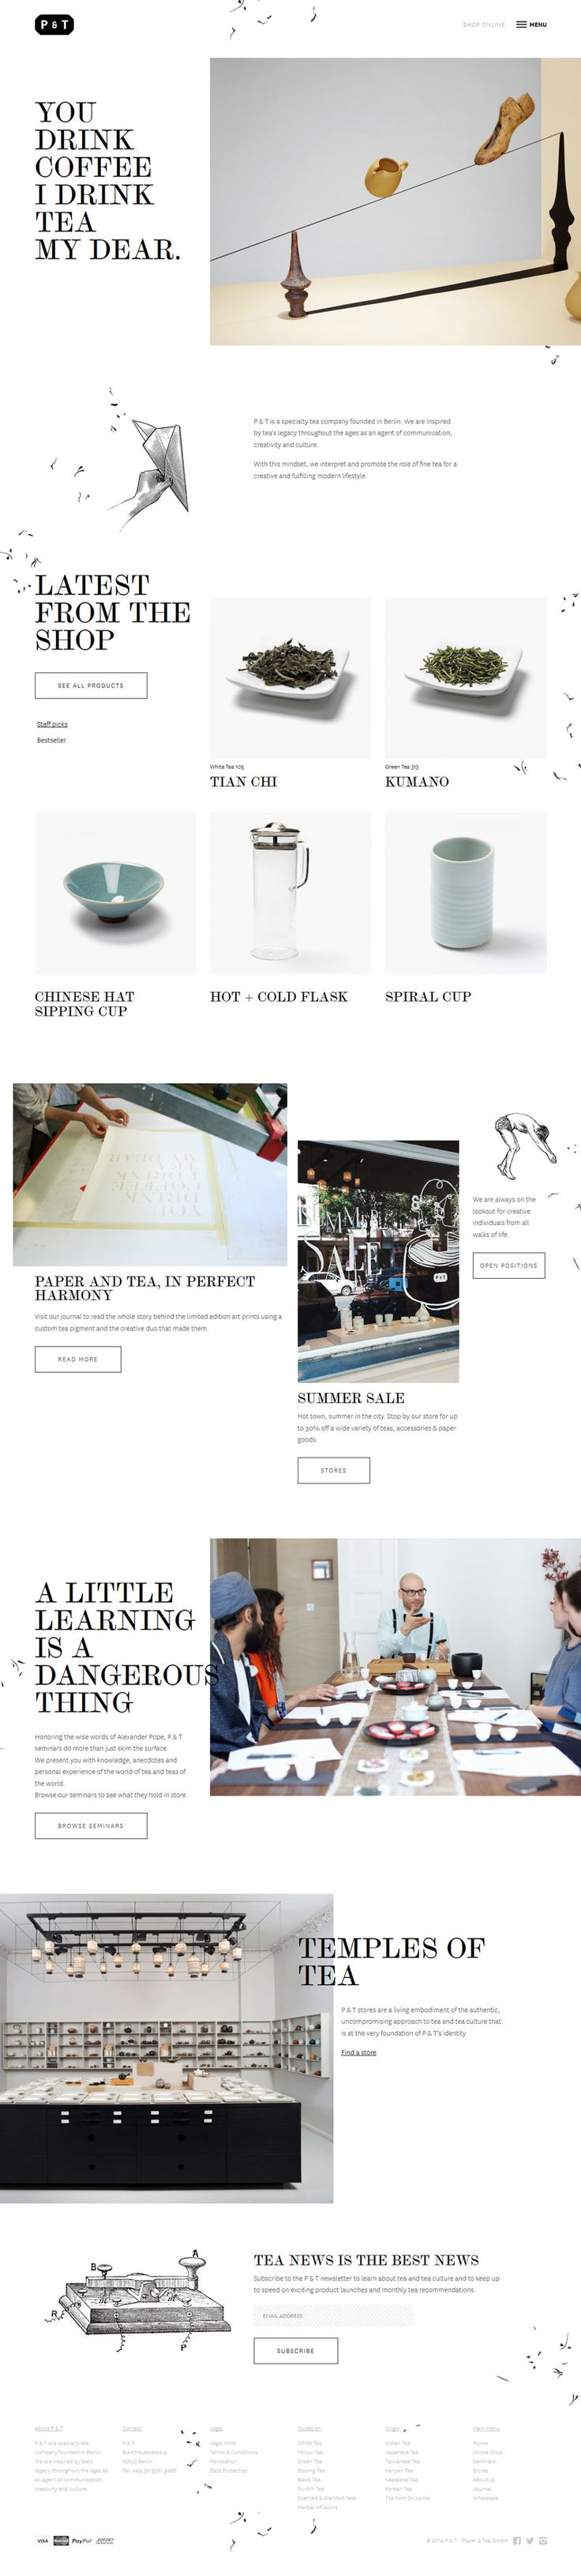 Minimal Design Website; Example; Category: Inspiration; Name Website: P & T; Type Website: Drink good tea; Serif Font; Color: Black and White.